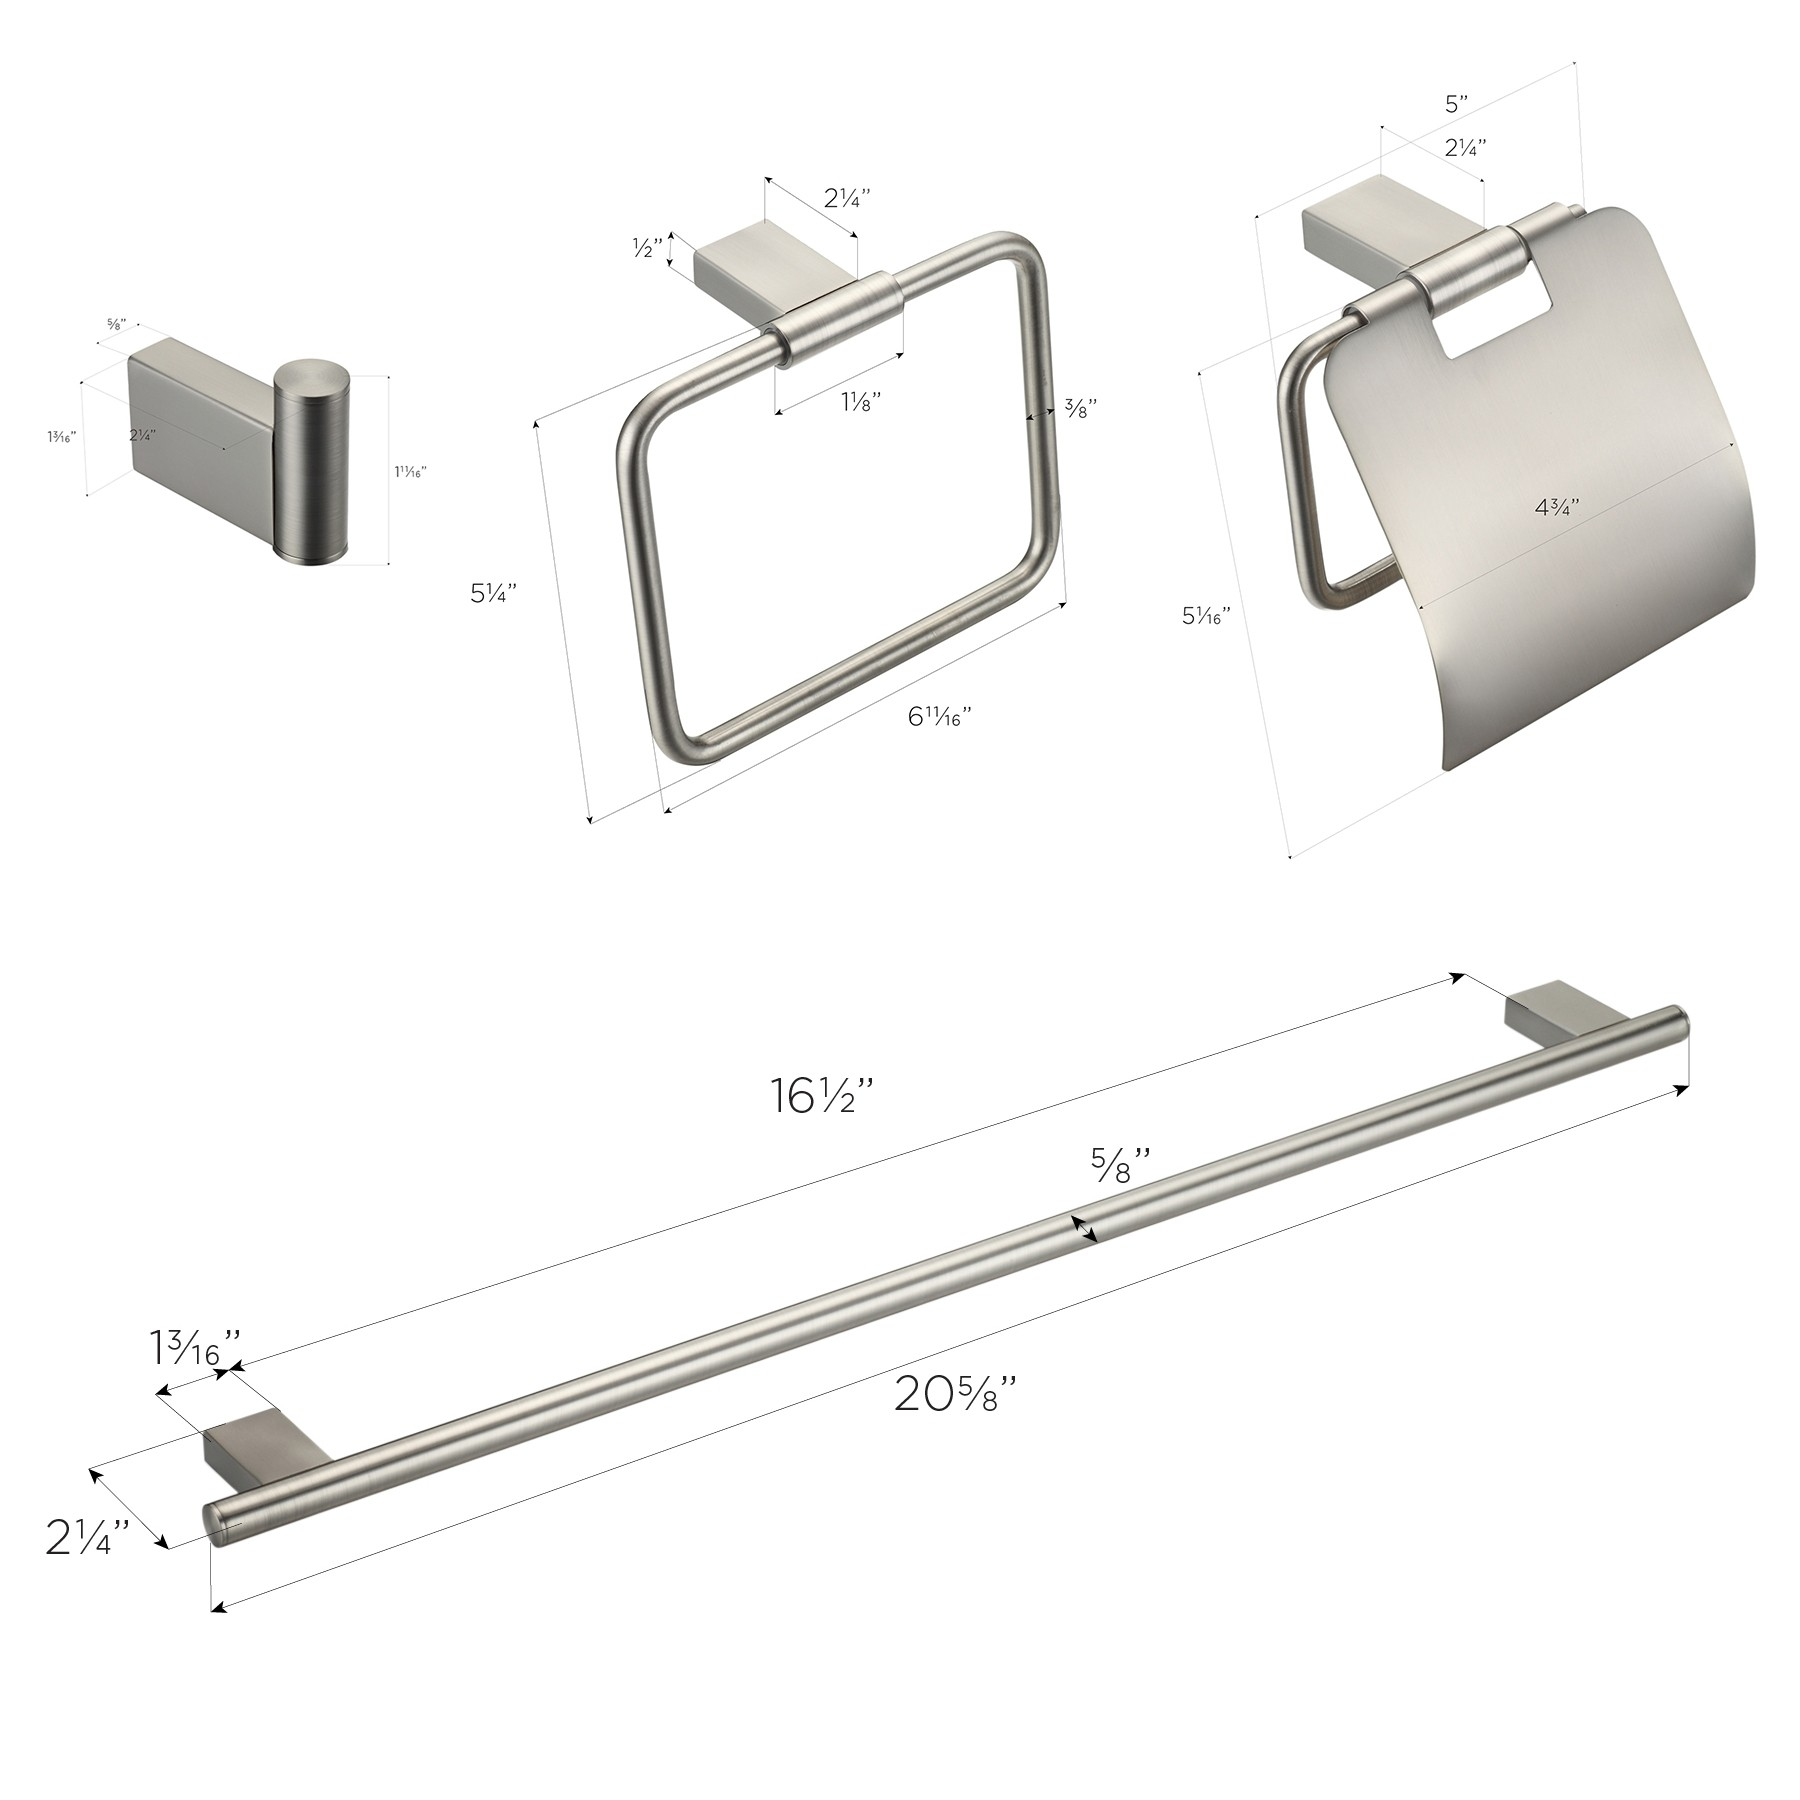 "Benidorm 4-Piece Bathroom Hardware Set with 24"" Towel Bar, Brushed Nickel"